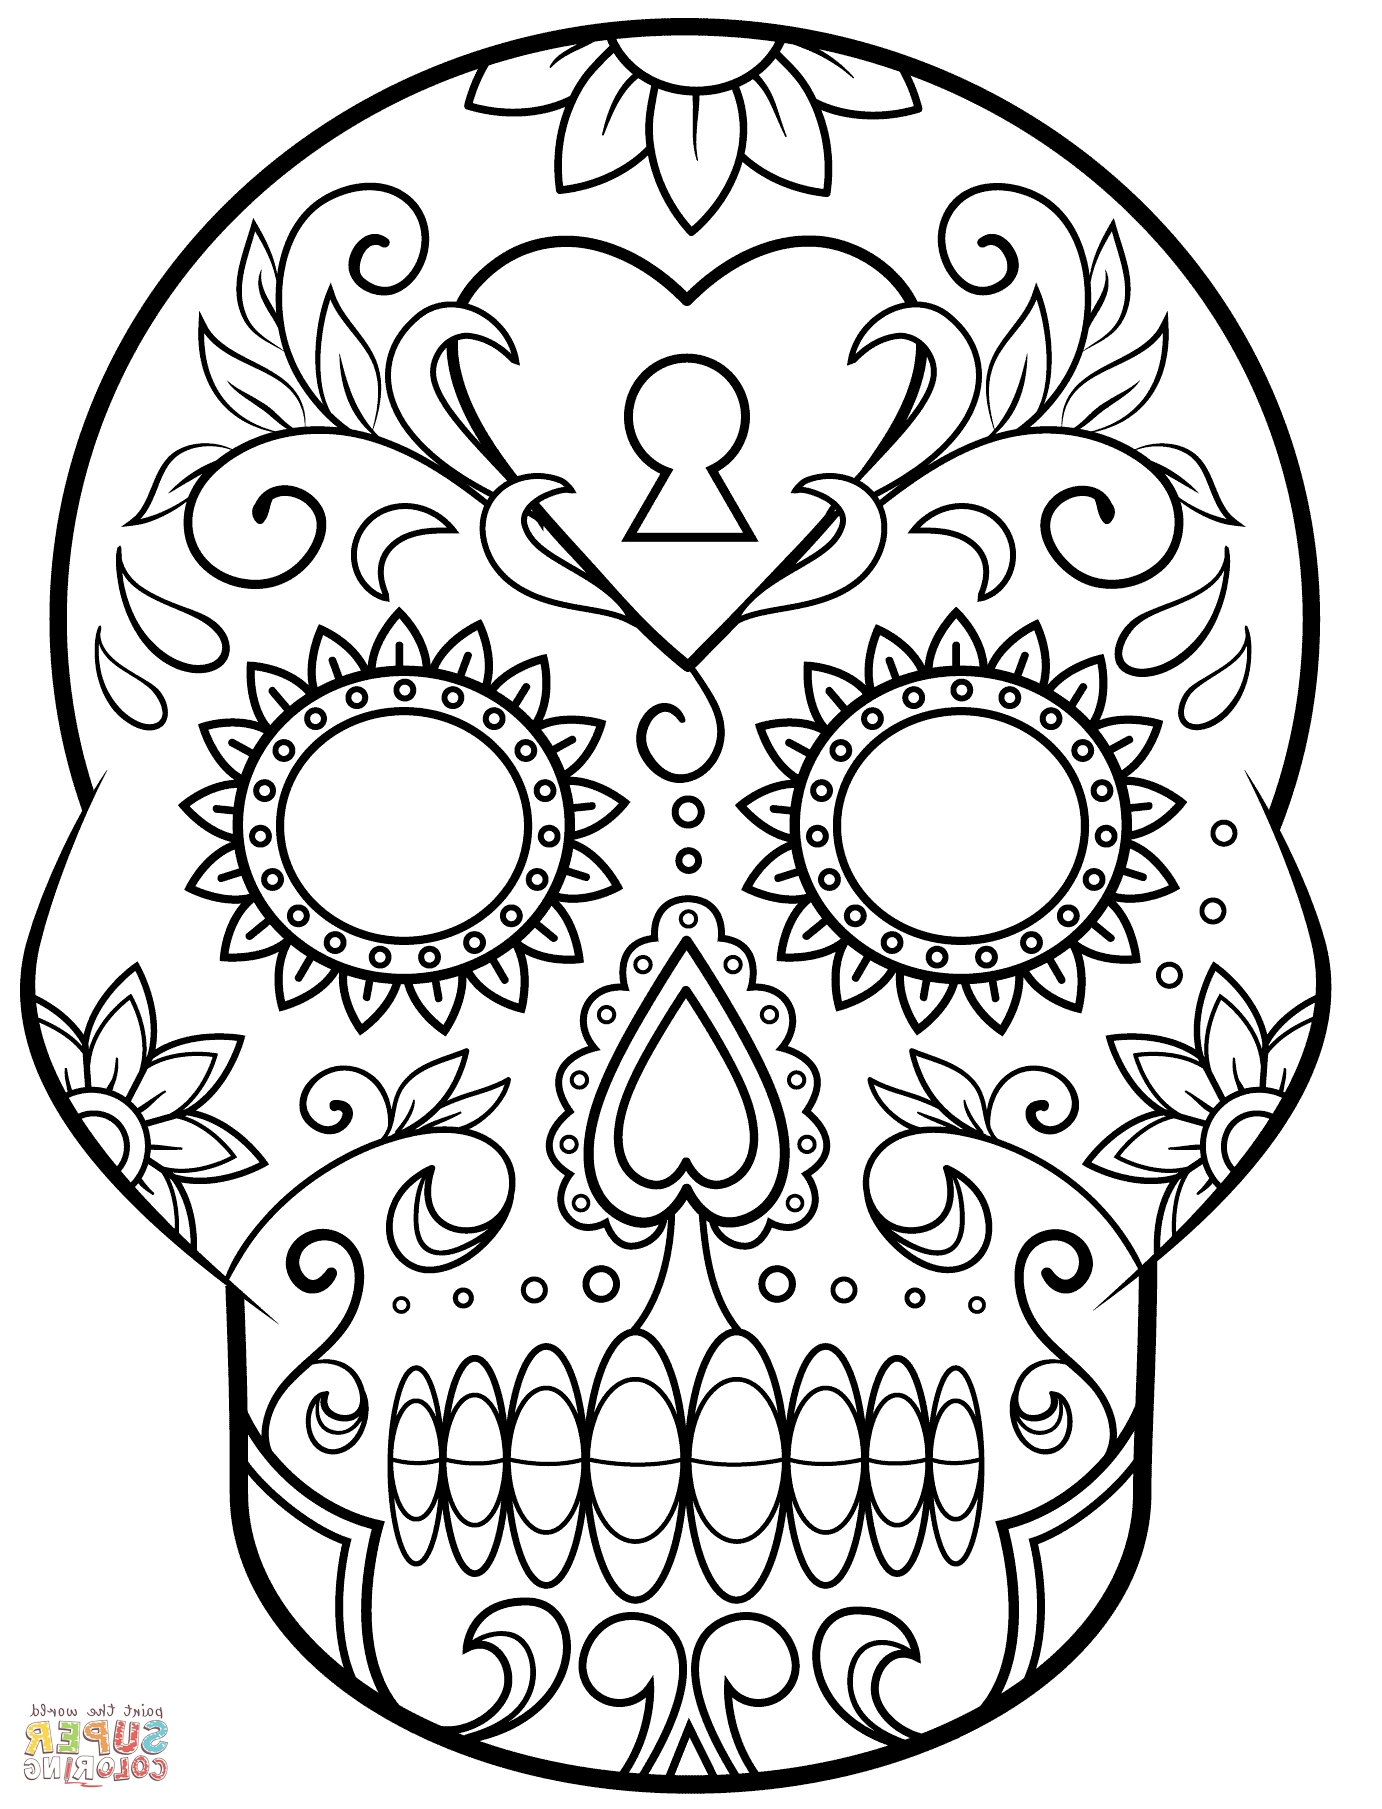 Free Printable Day Of The Dead Coloring Pages | Crafted Here - Free Printable Day Of The Dead Coloring Pages